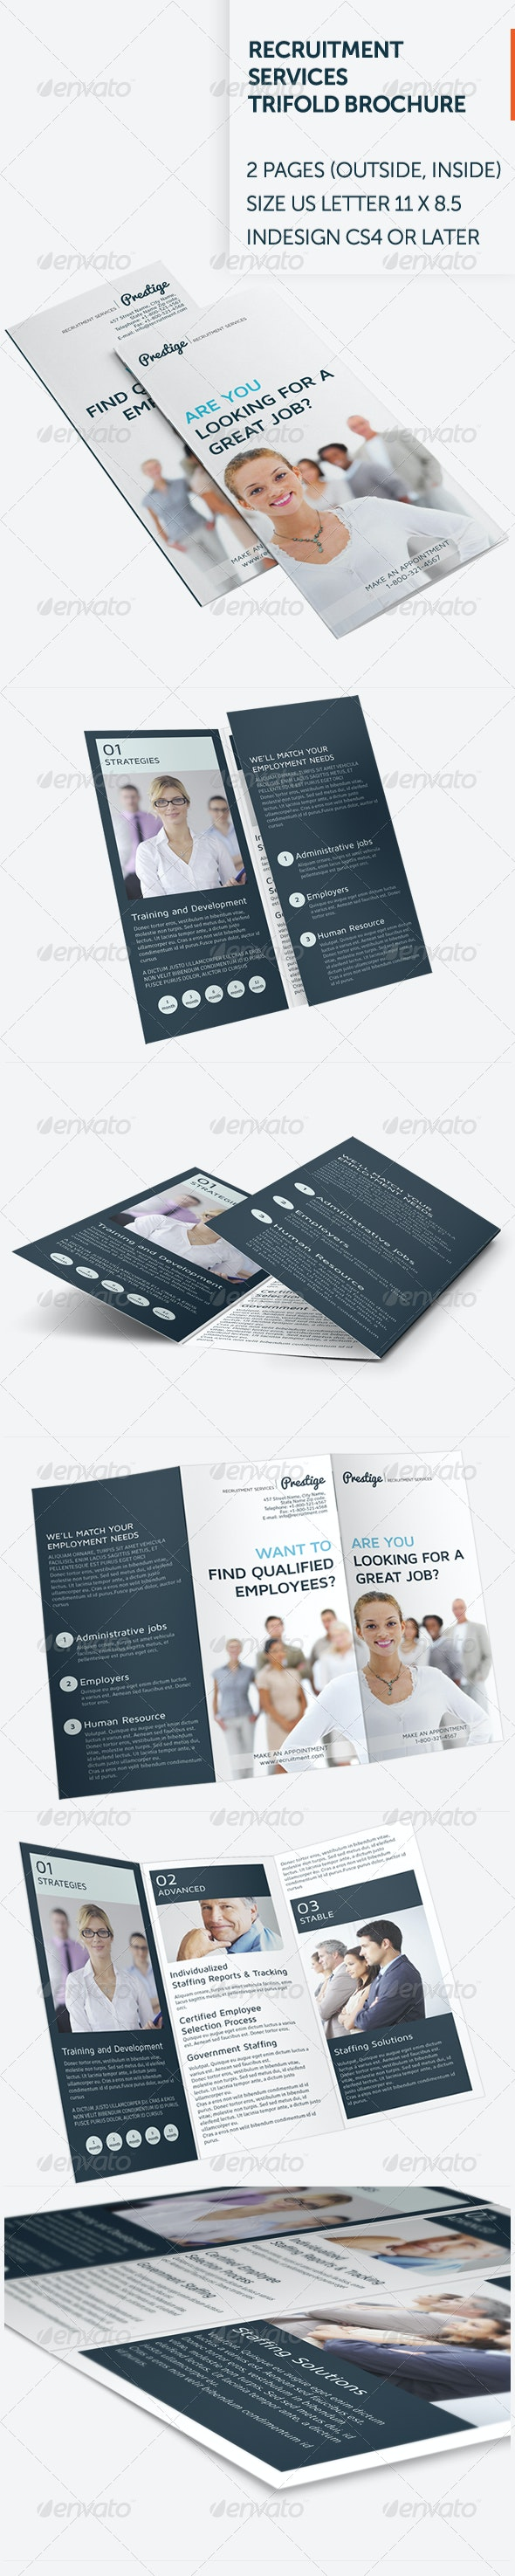 Recruitment Services Trifold Brochure - Informational Brochures